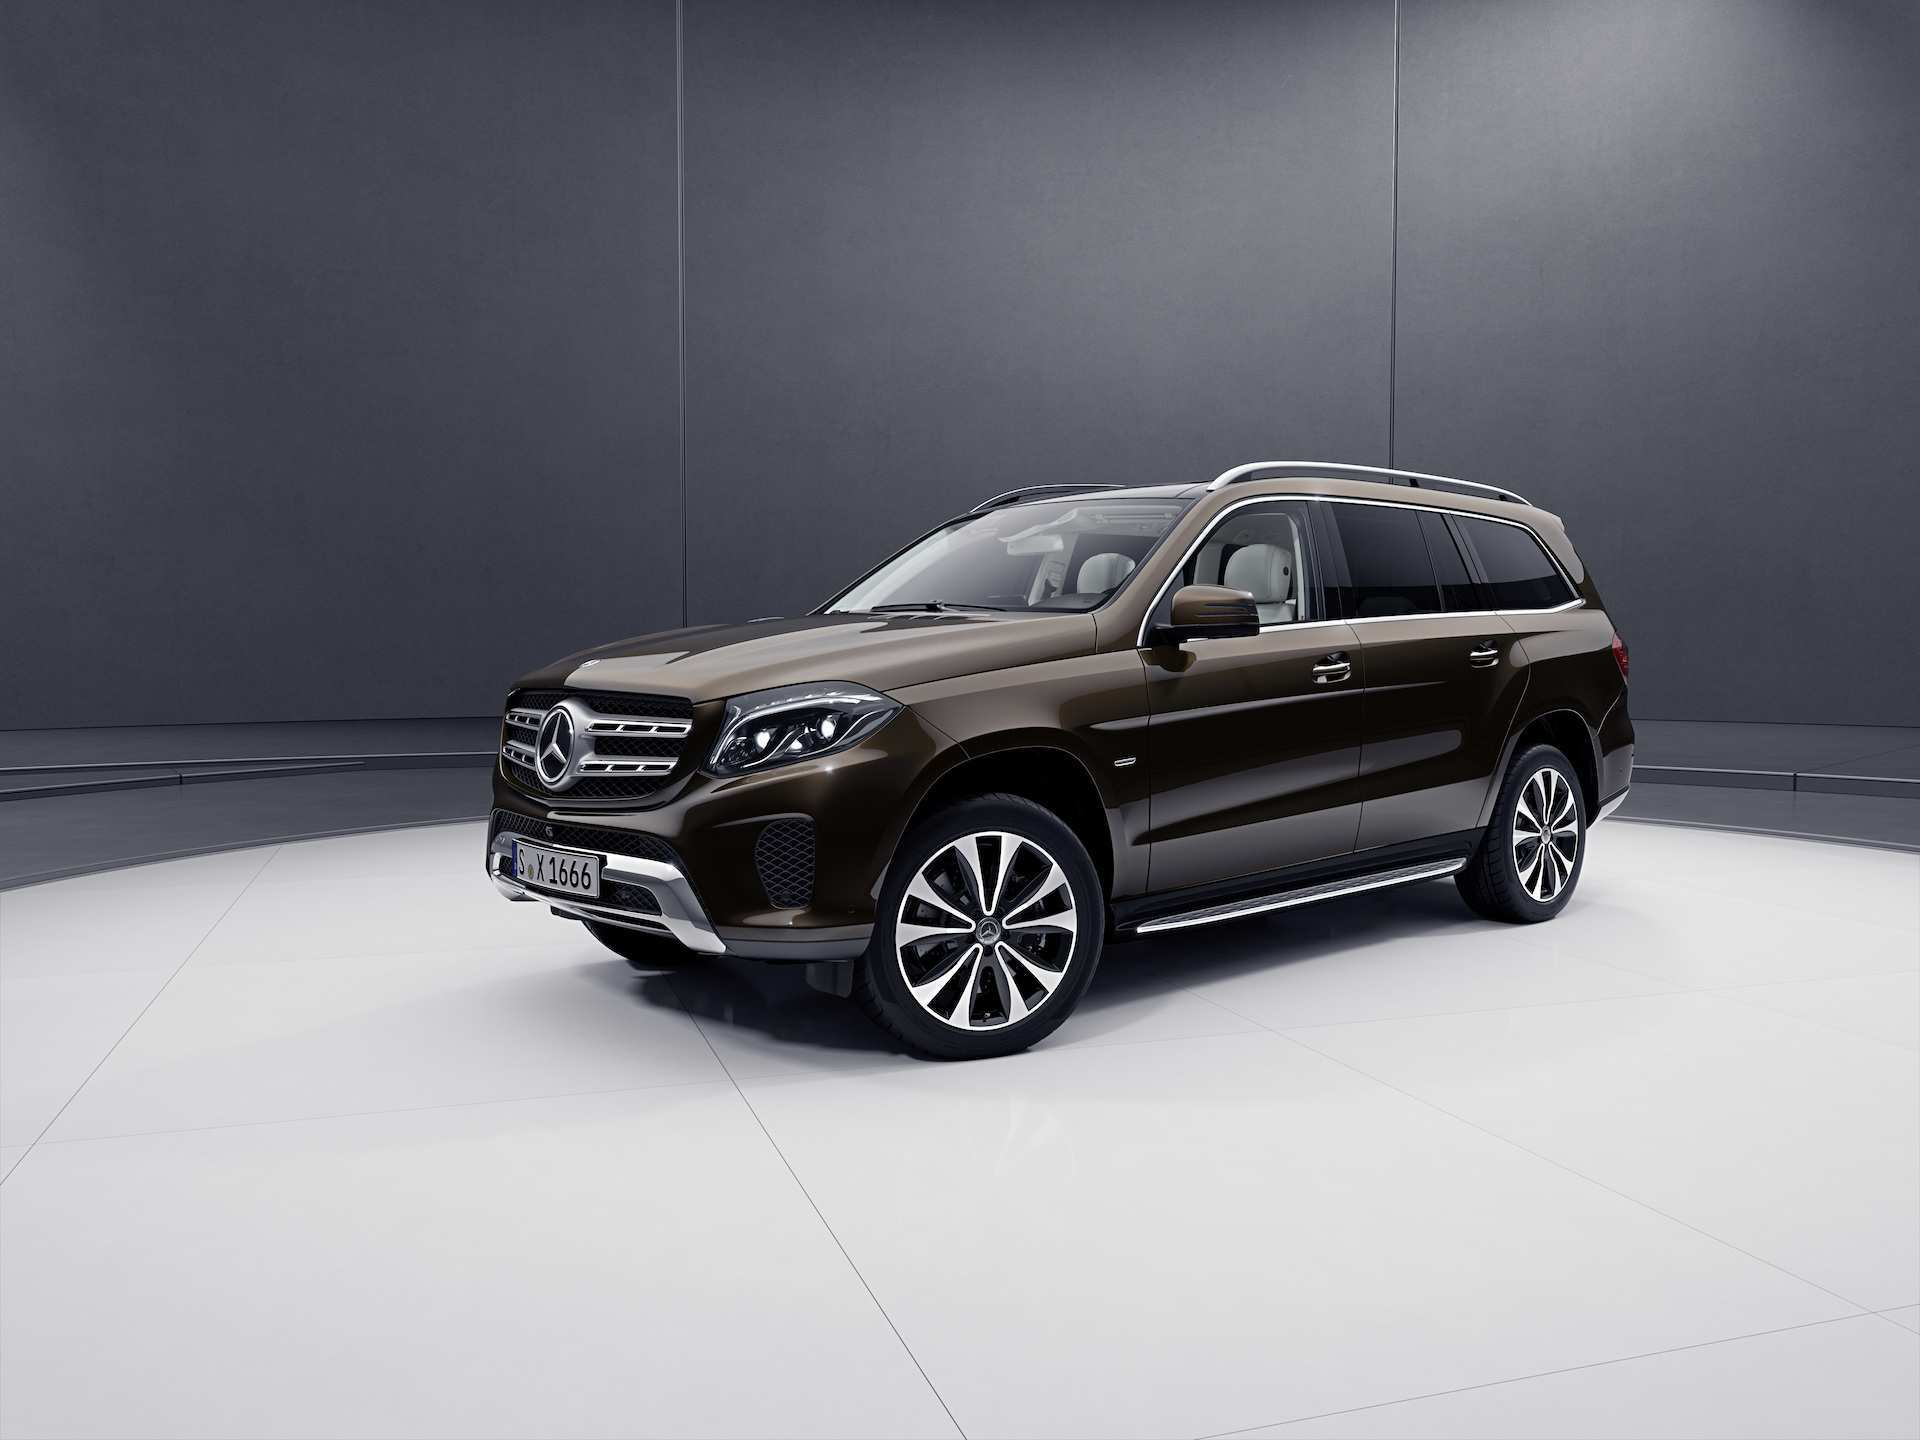 57 Best Review Gls Mercedes 2019 Release Date for Gls Mercedes 2019